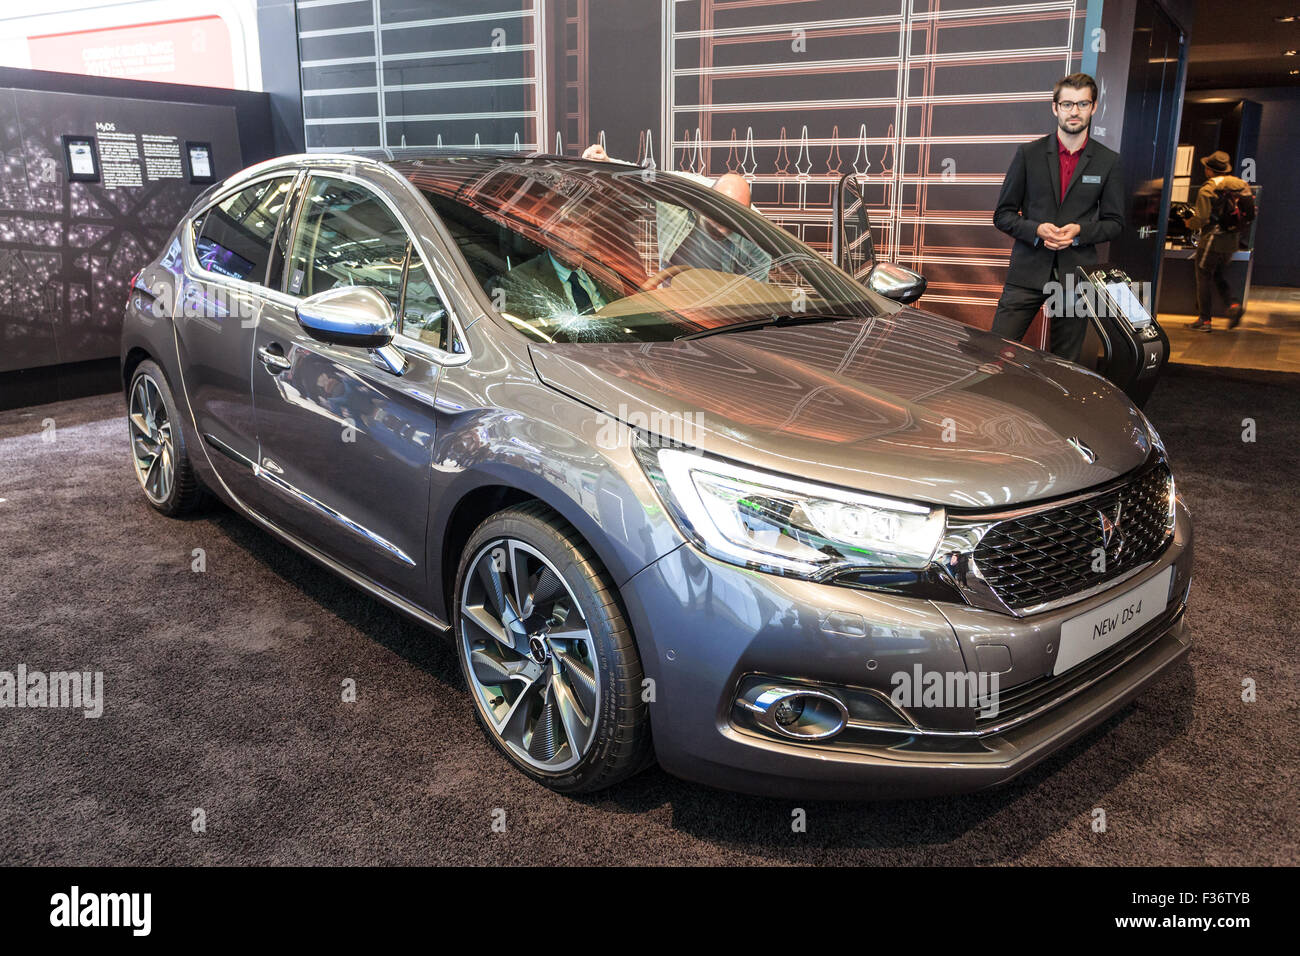 New Citroen DS4 Crossover at the IAA International Motor Show 2015 - Stock Image